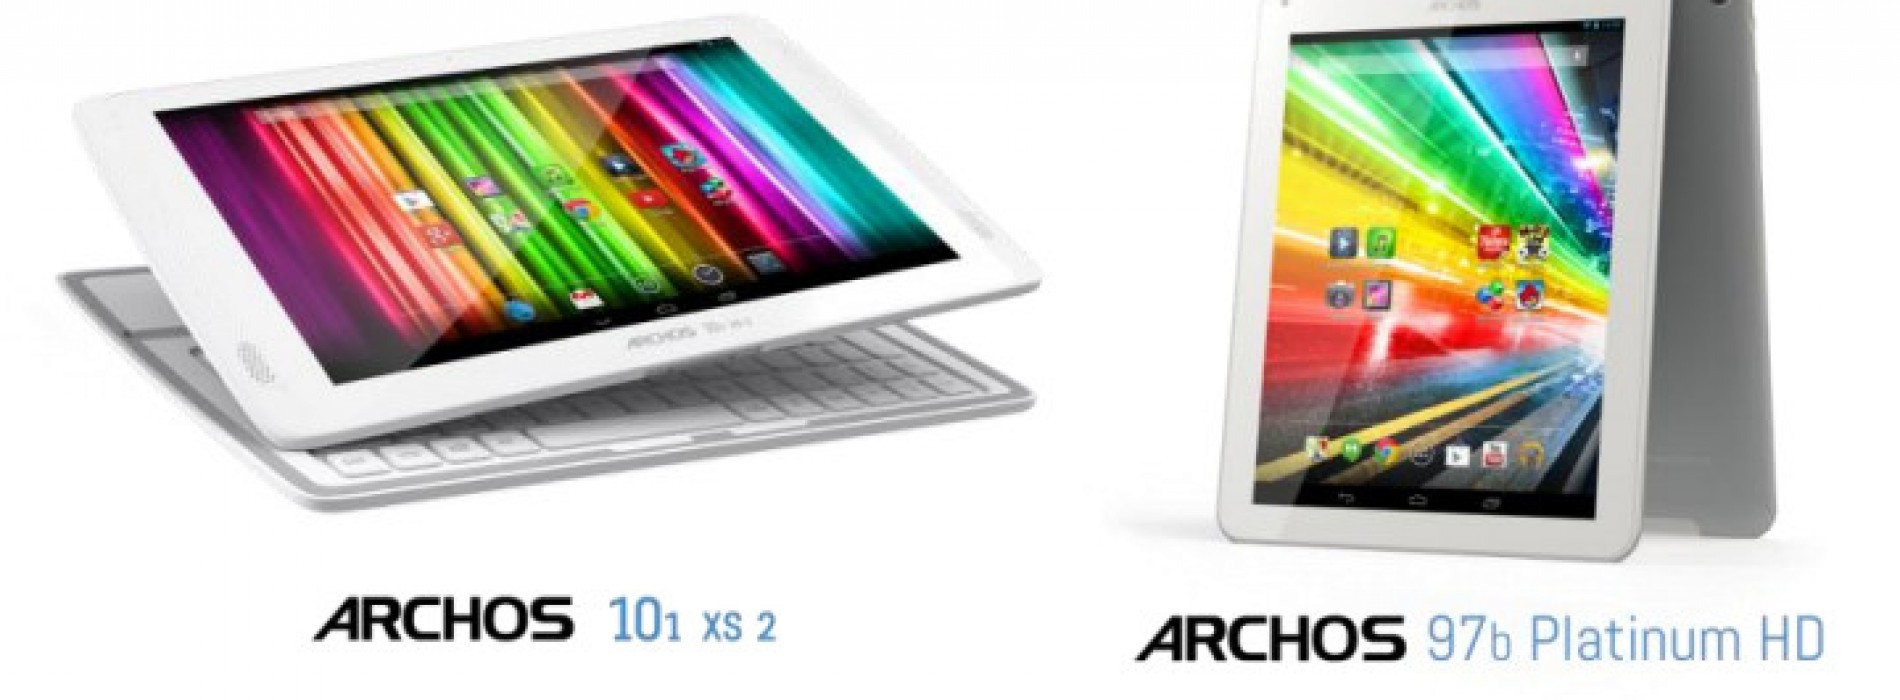 Archos teases new products for IFA 2013